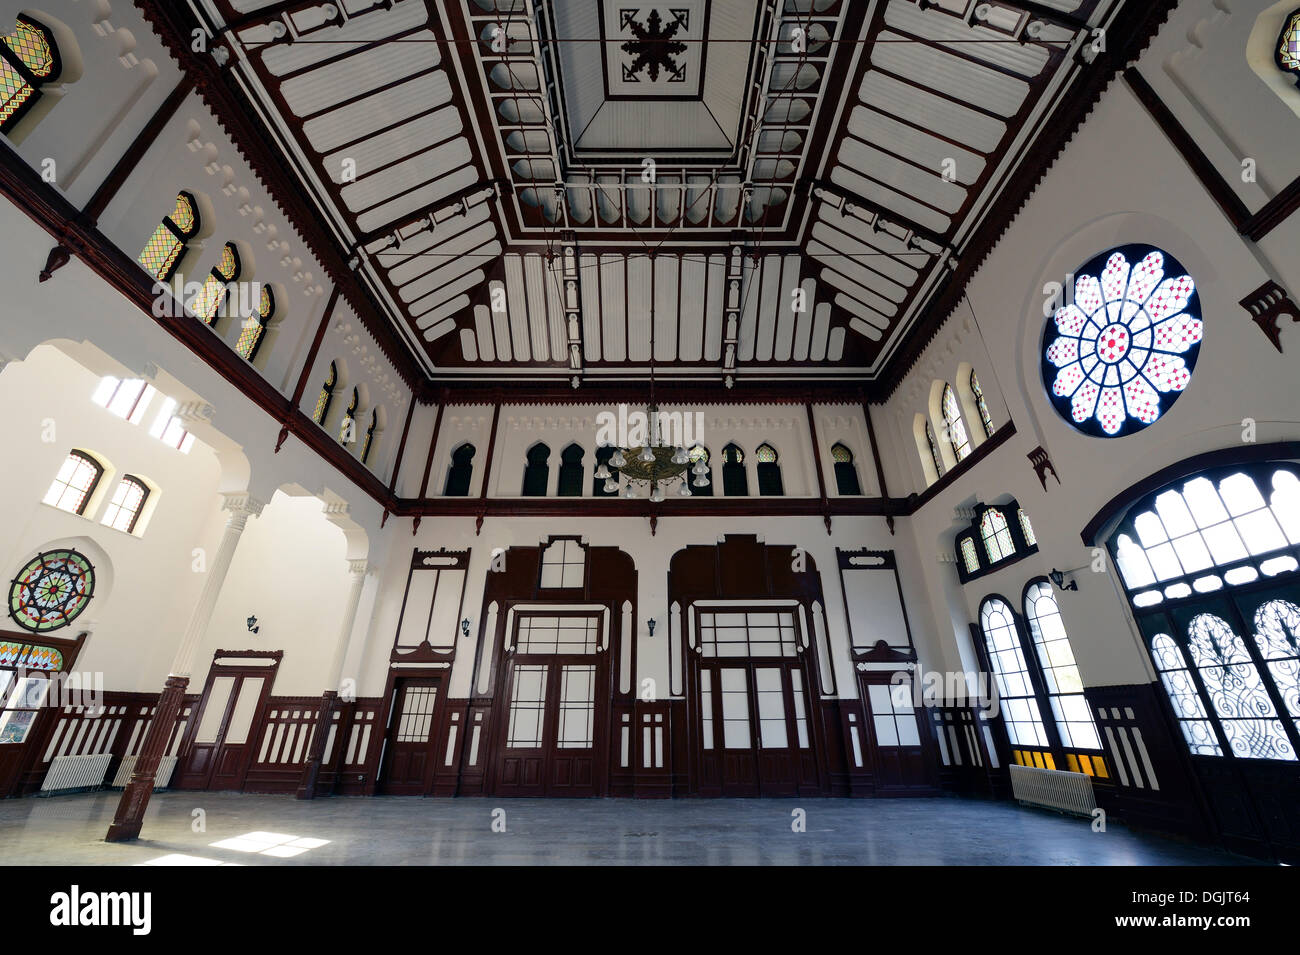 Concourse of Sirkeci Station, the former terminus of the Orient Express, Istanbul, European side, Istanbul Province, Turkey - Stock Image